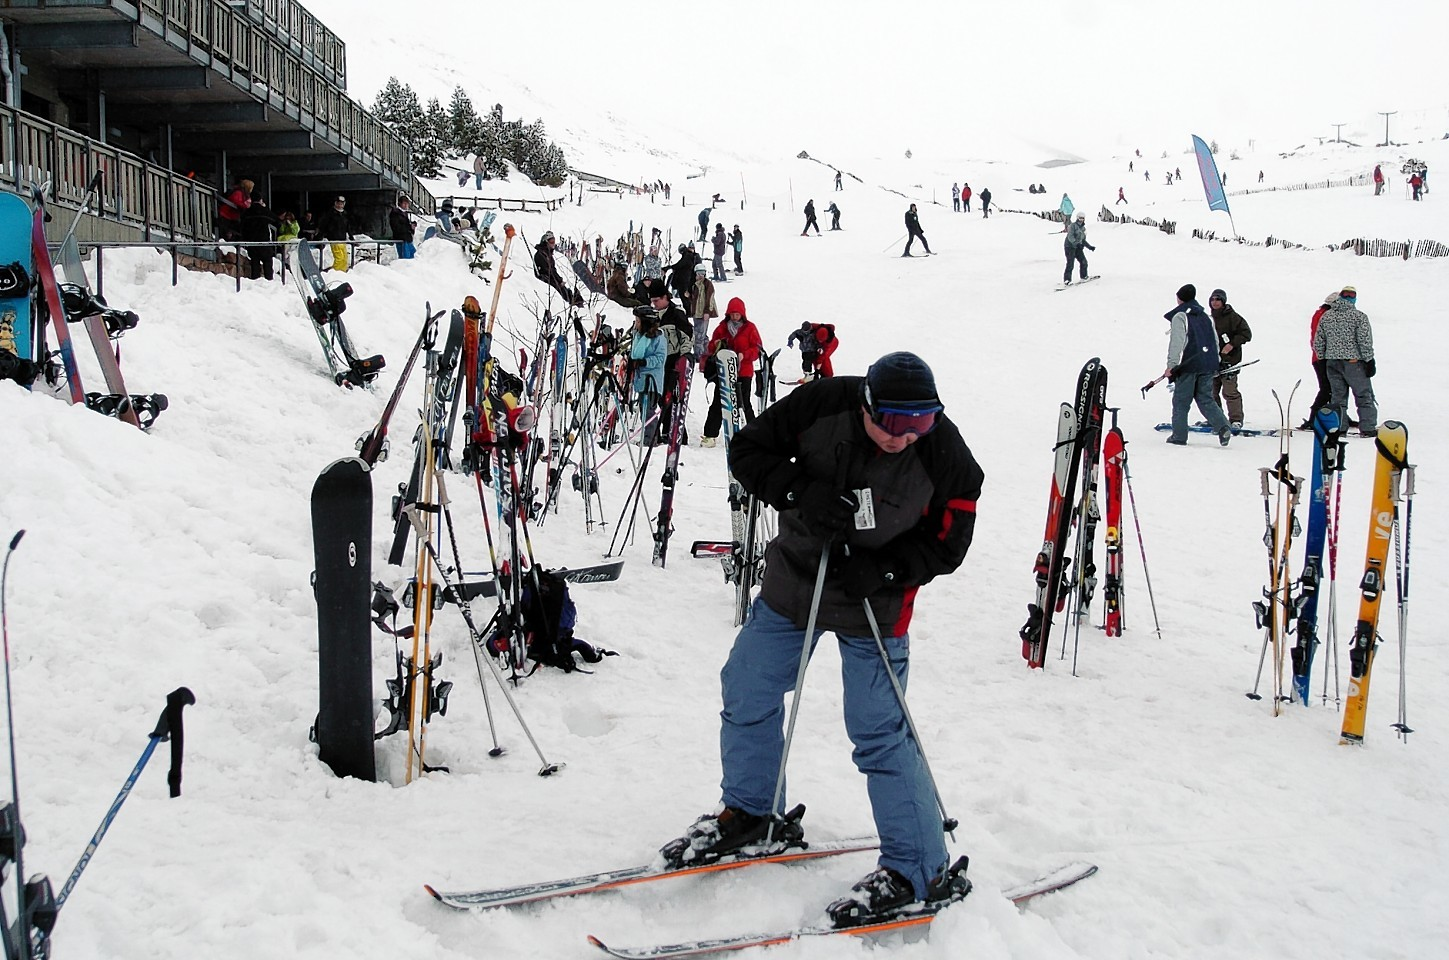 Skiing at the Cairngorm Ski Resort.Picture by Gordon Lennox